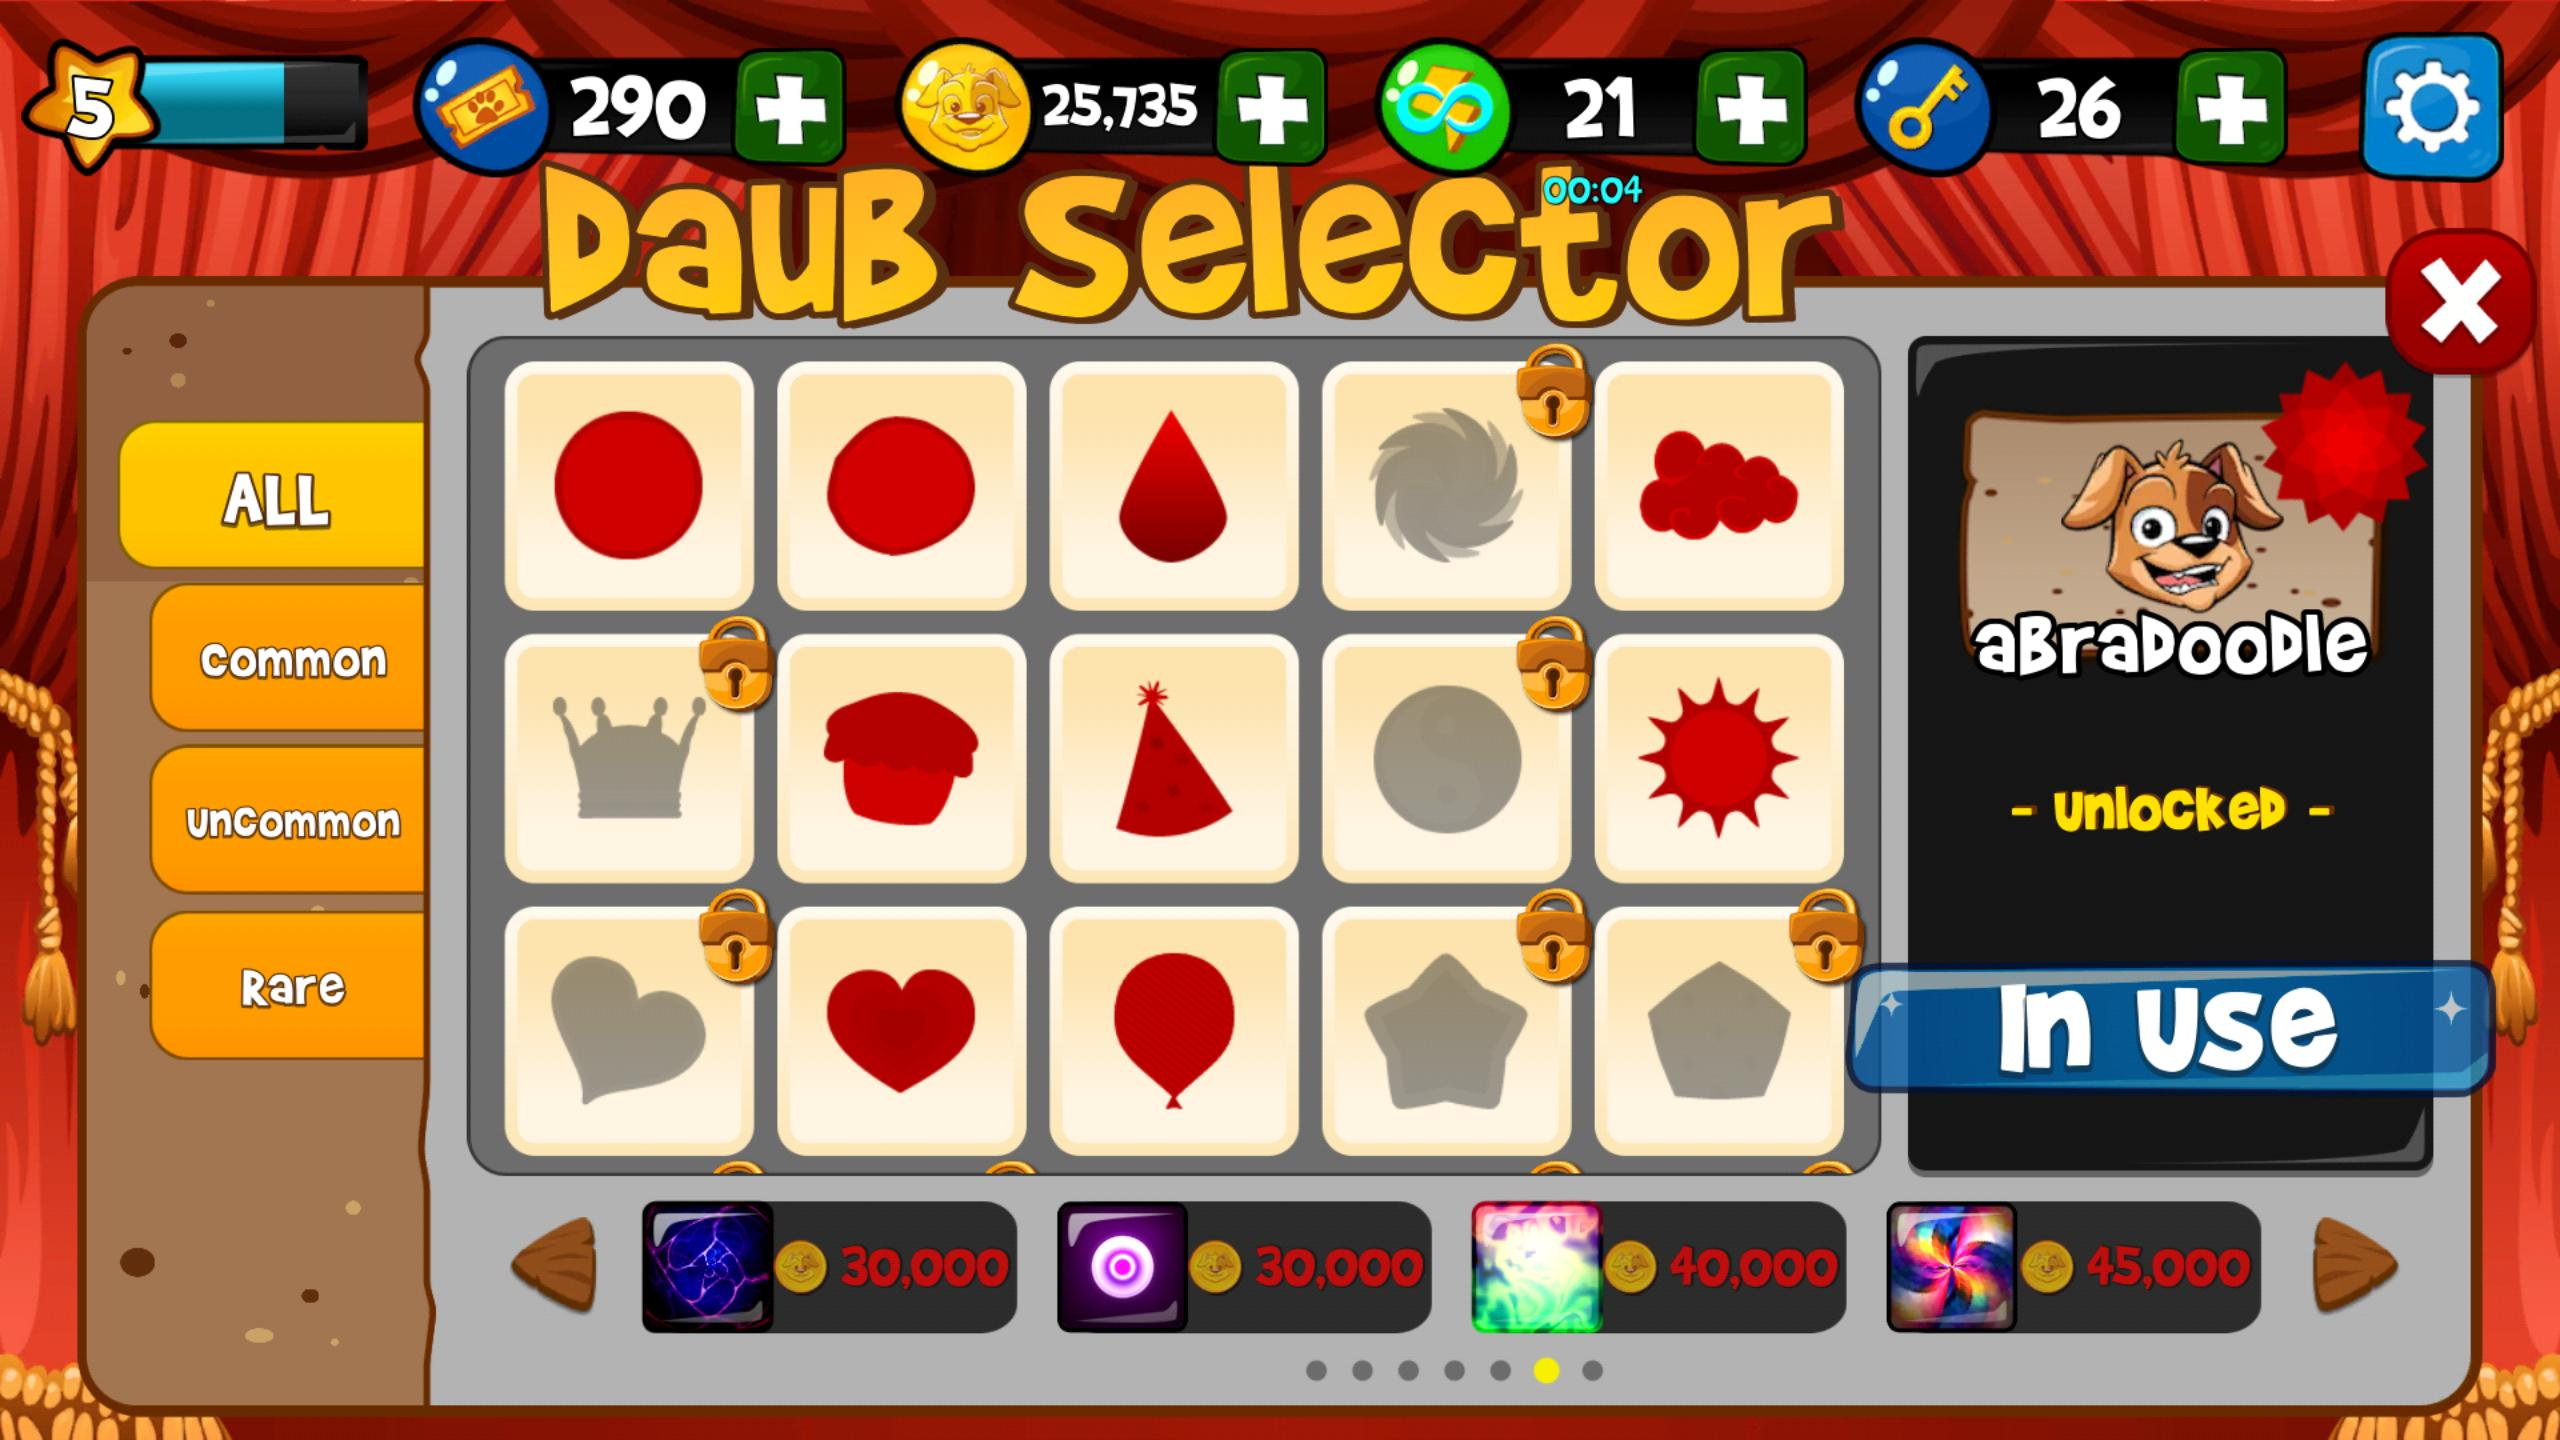 Bingo Abradoodle - Bingo Games Free to Play! 3.0.02 Screenshot 7